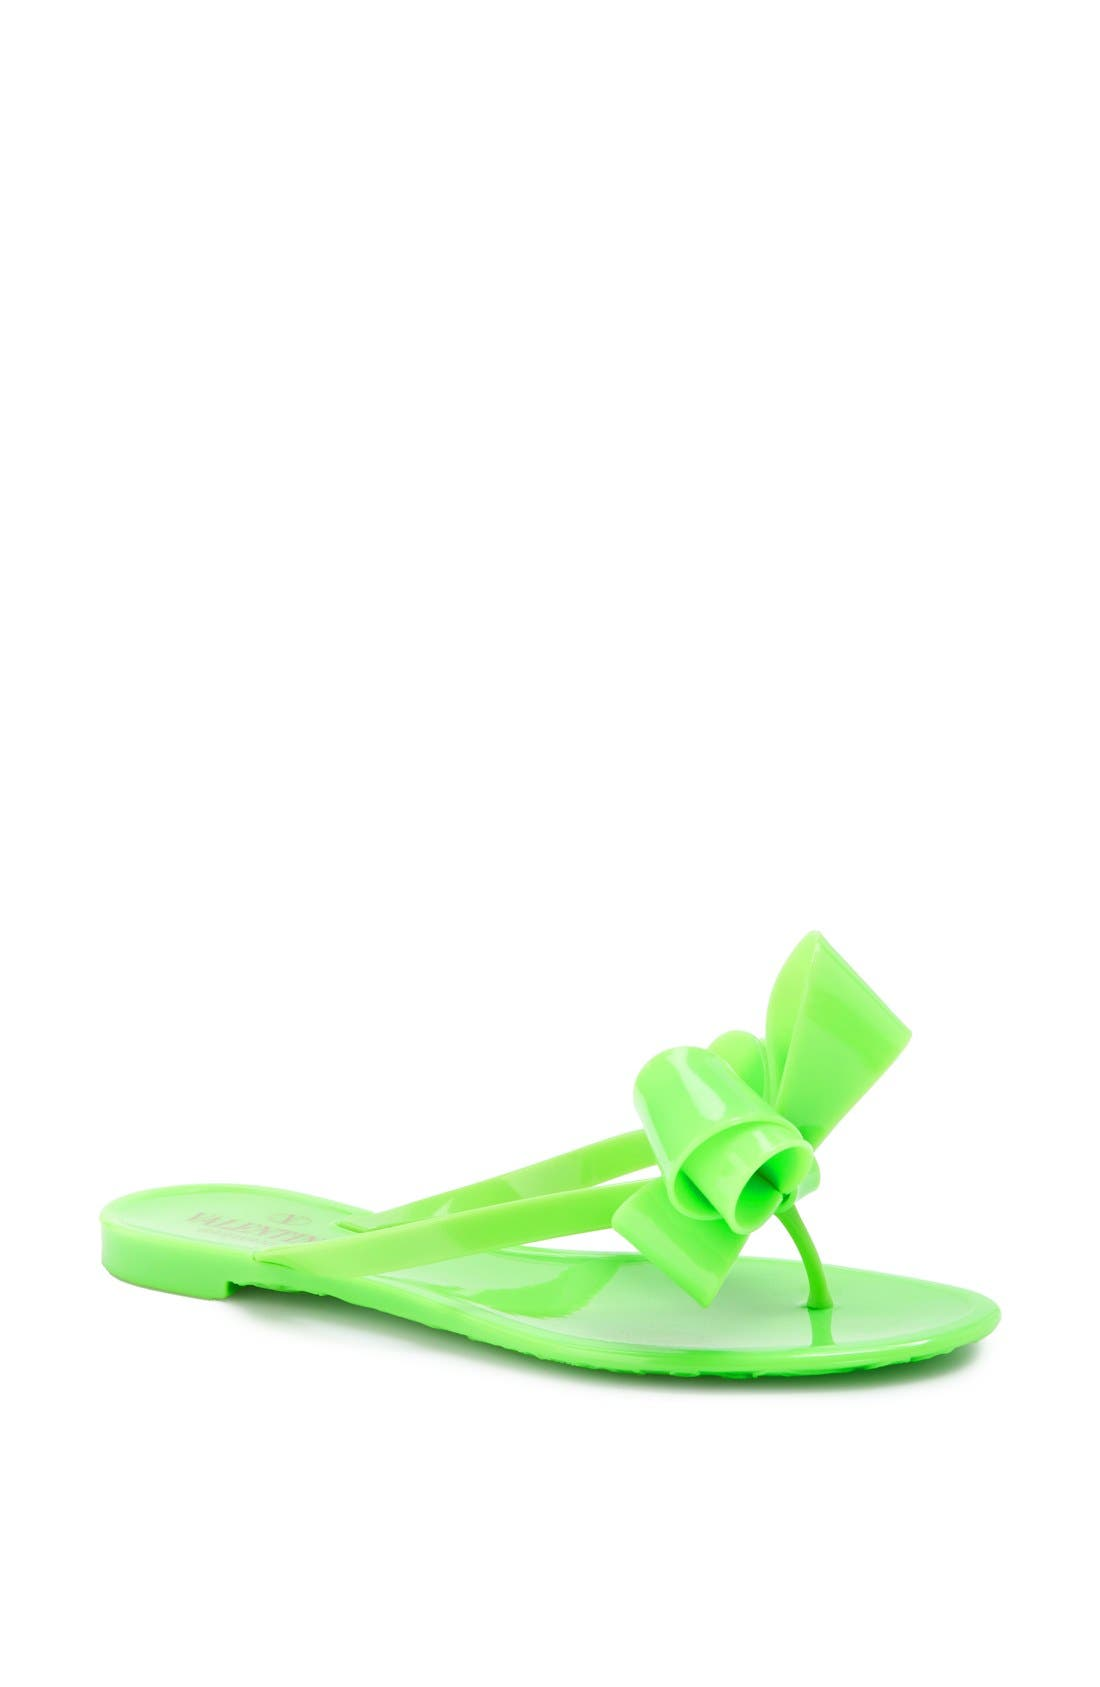 Couture Bow Thong Sandal,                             Main thumbnail 6, color,